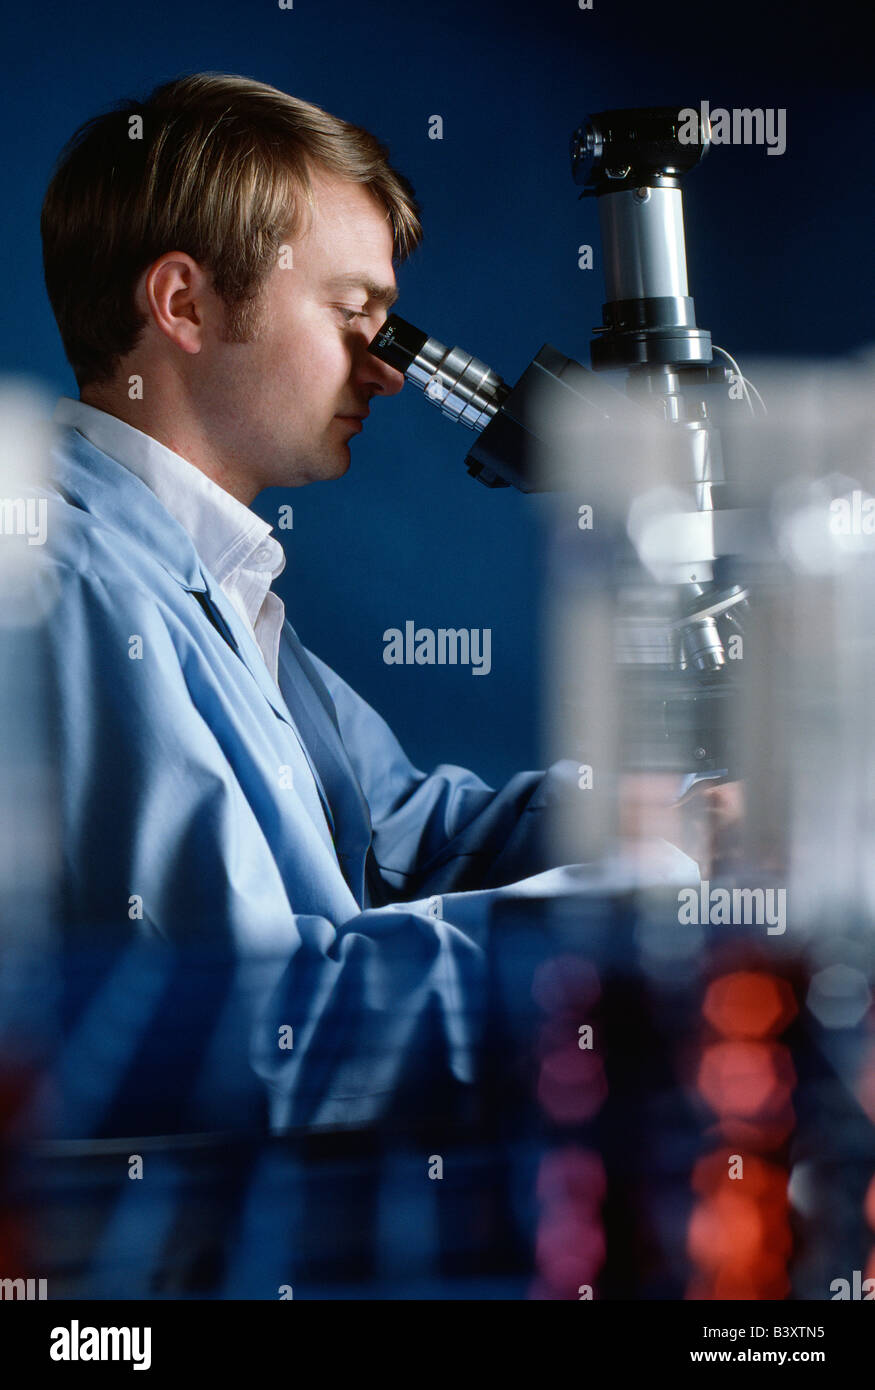 Technician checking water samples through a microscope in the quality control laboratory of a water treatment plant. Stock Photo